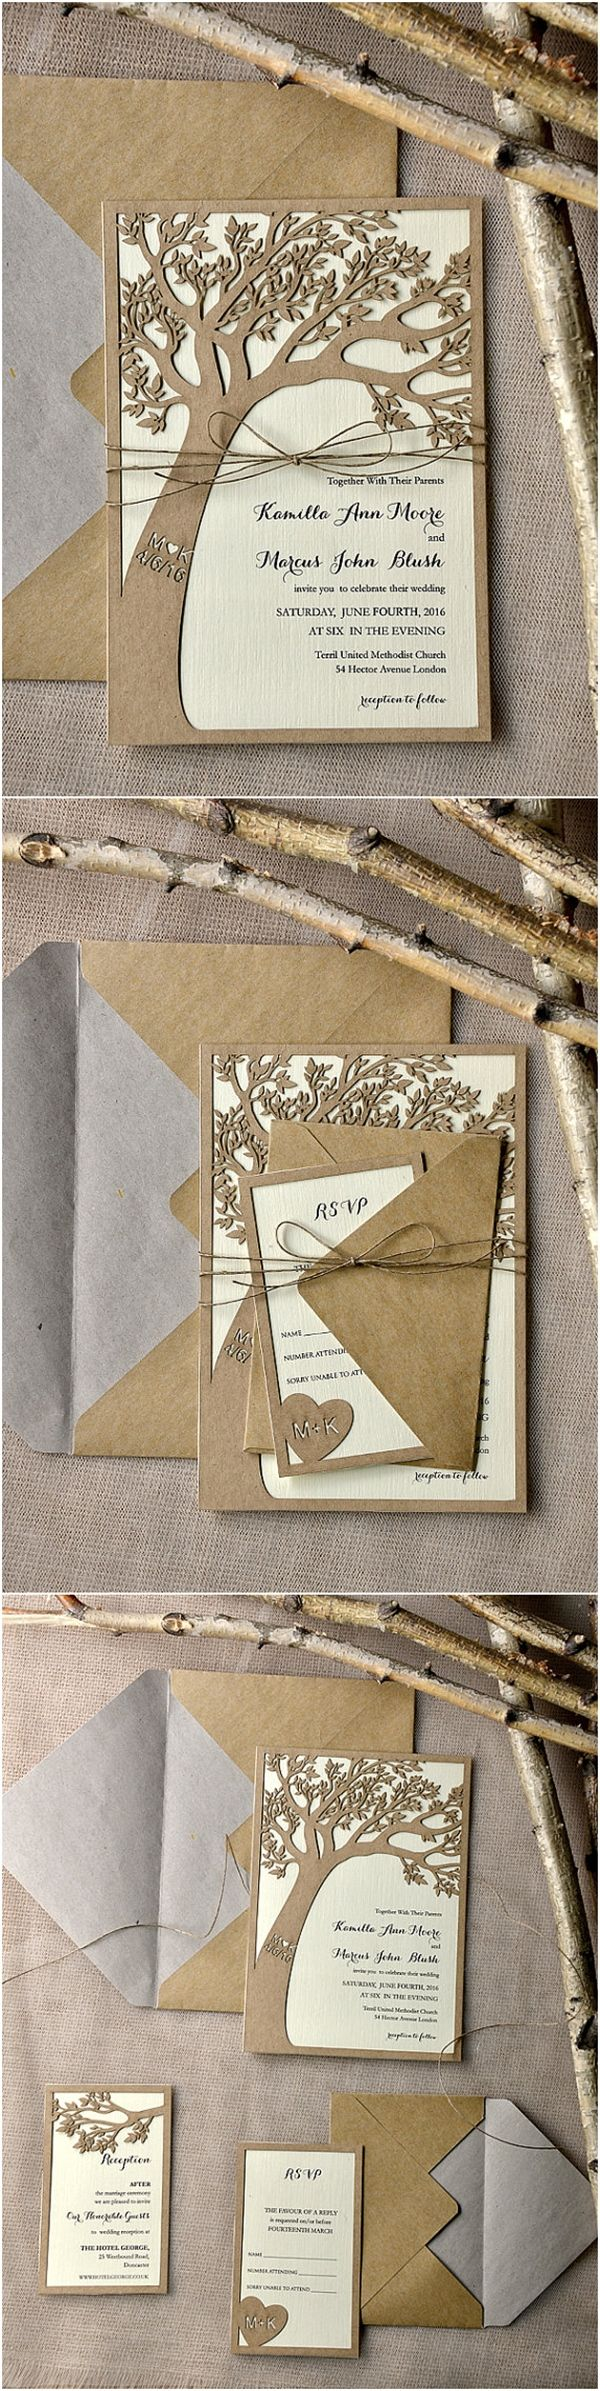 Rustic Country Eco Chic Laser Cut Tree Wedding Invitations - Deer Pearl Flowers